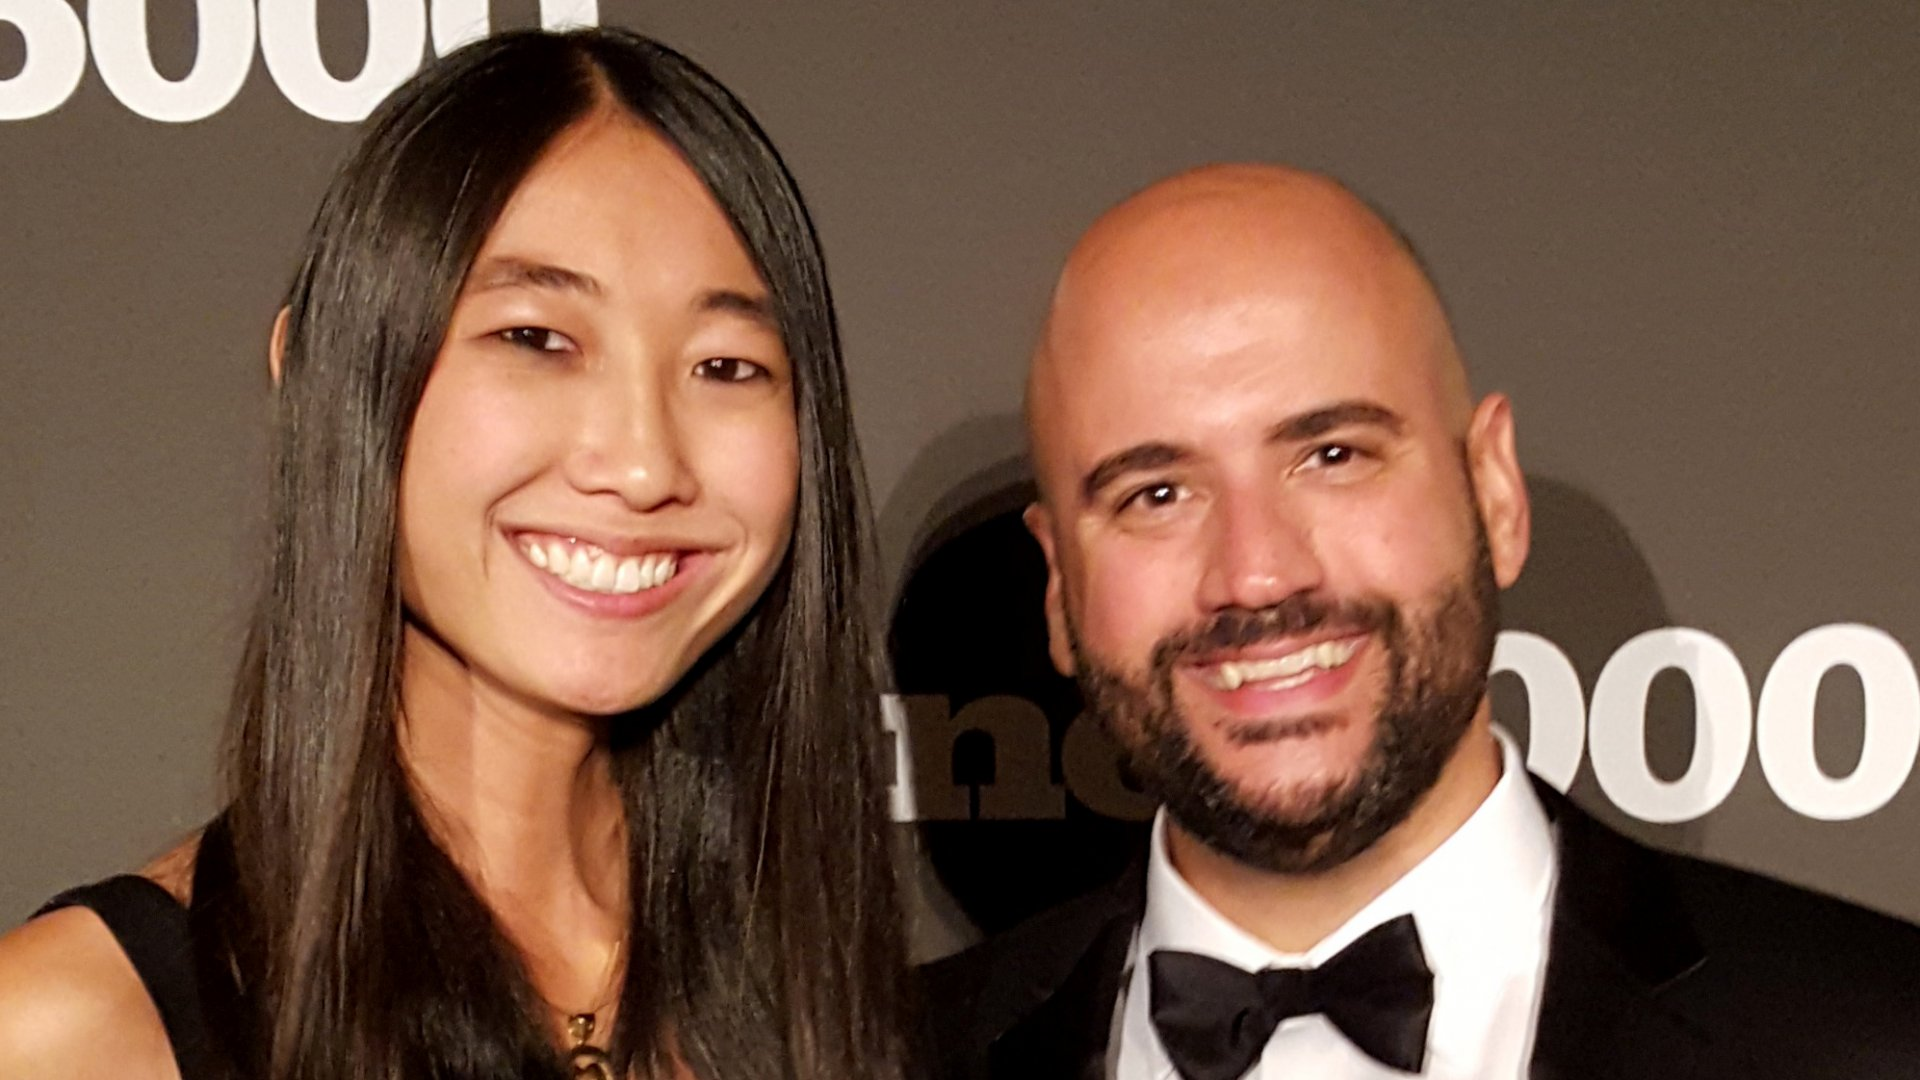 BioPoint Inc. co-founder Edwin Matos (right) poses with Jessica Mah, founder of San Francisco-based inDinero, at the Inc. 5000 gala.